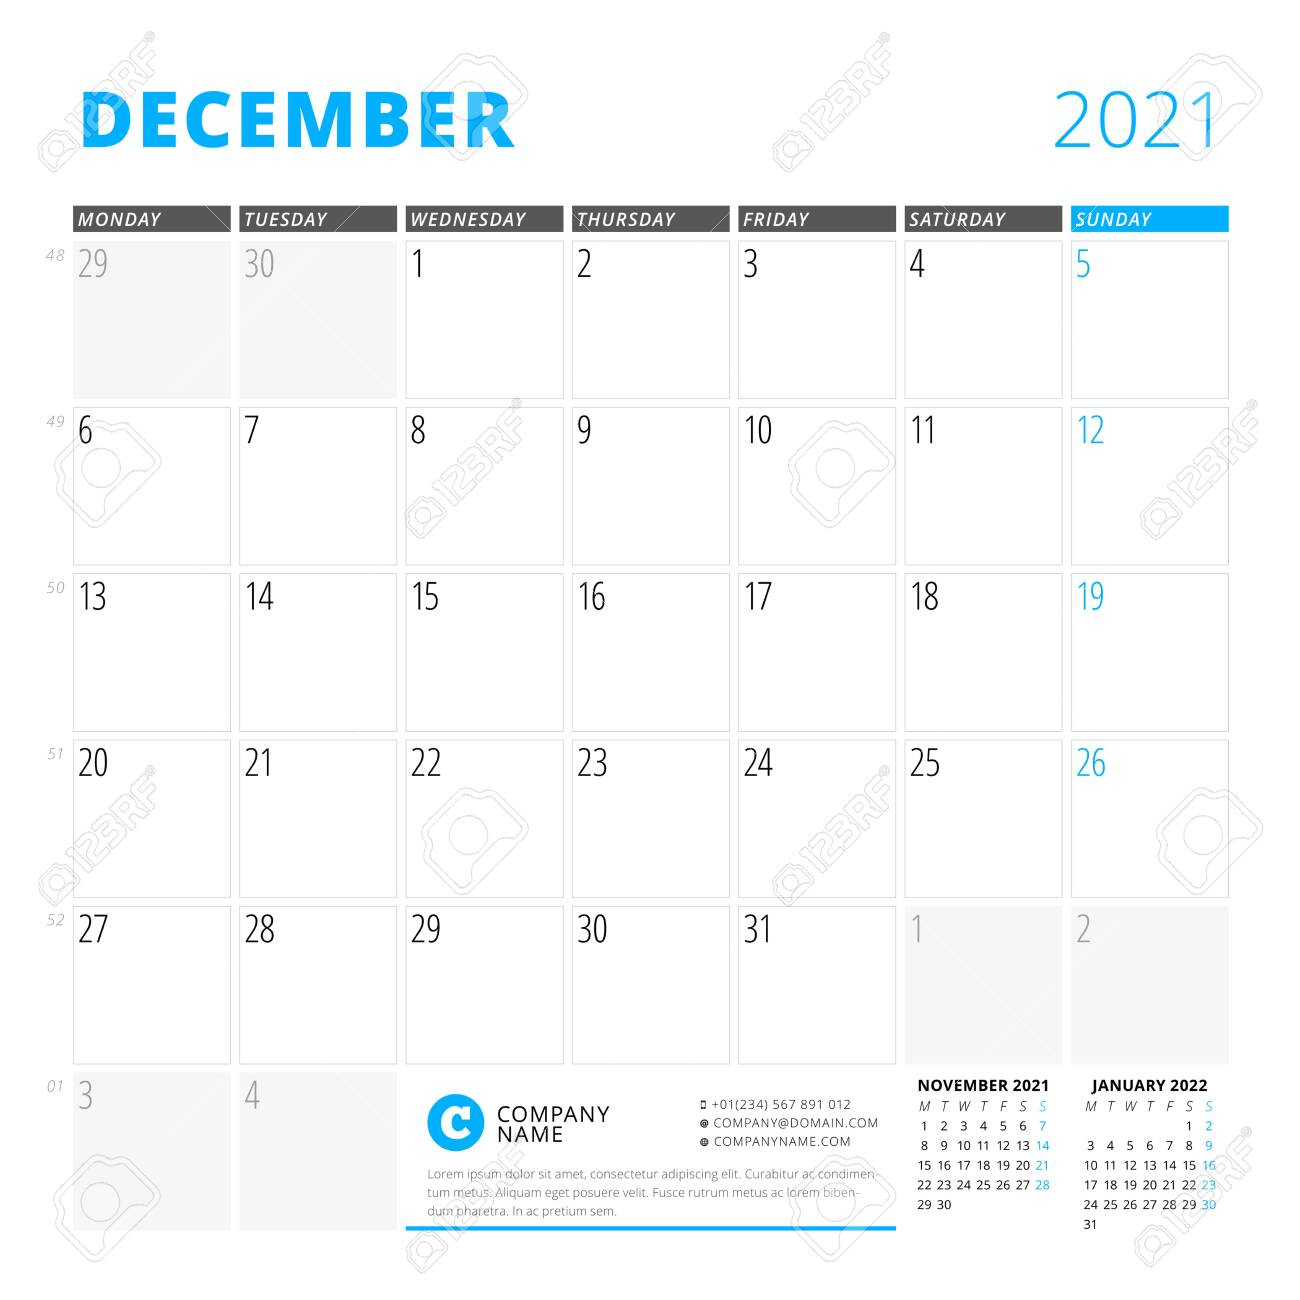 Corporate Design Planner Template For December 2021. Monthly Planner.  Stationery Design. Week Starts On Monday. Vector Illustration